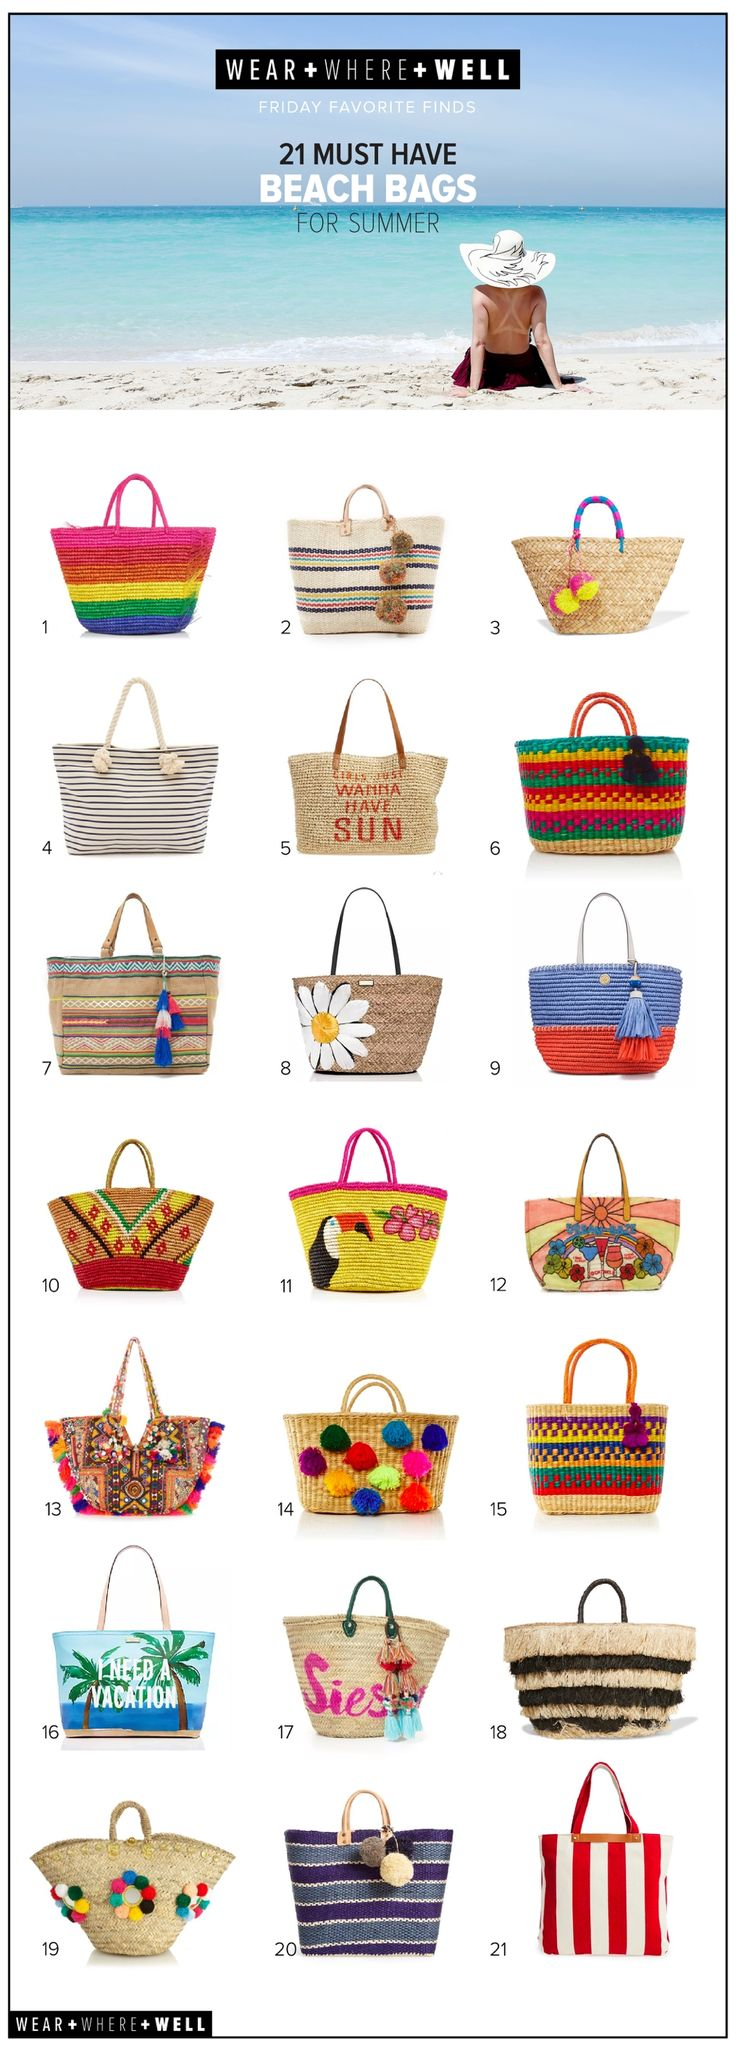 Friday Favorite Finds: 21 Best Beach Bags for Summer Happy Friday, friends! With the temperatures rising and summer fast approaching, thoughts of beach getaways fill my mind. So, let's get beach ready shall we? Consider this the first installment mini-series on beach essentials. Let's start with the all-important beach tote bag. Whether you like the …